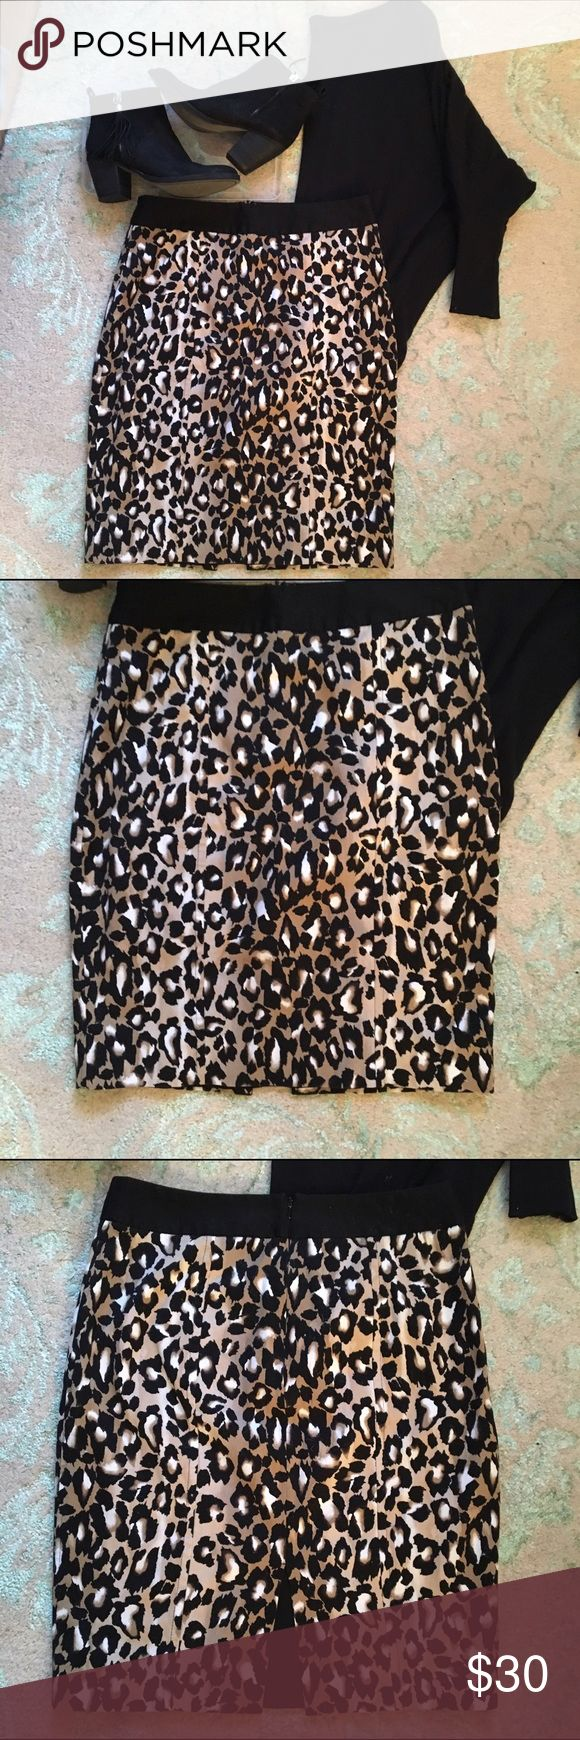 White House Black Market Leopard Pencil Skirt 8 In excellent condition. Lined, hook and zip closure, slit on back. No trades * Will consider reasonable offers * White House Black Market Skirts Pencil